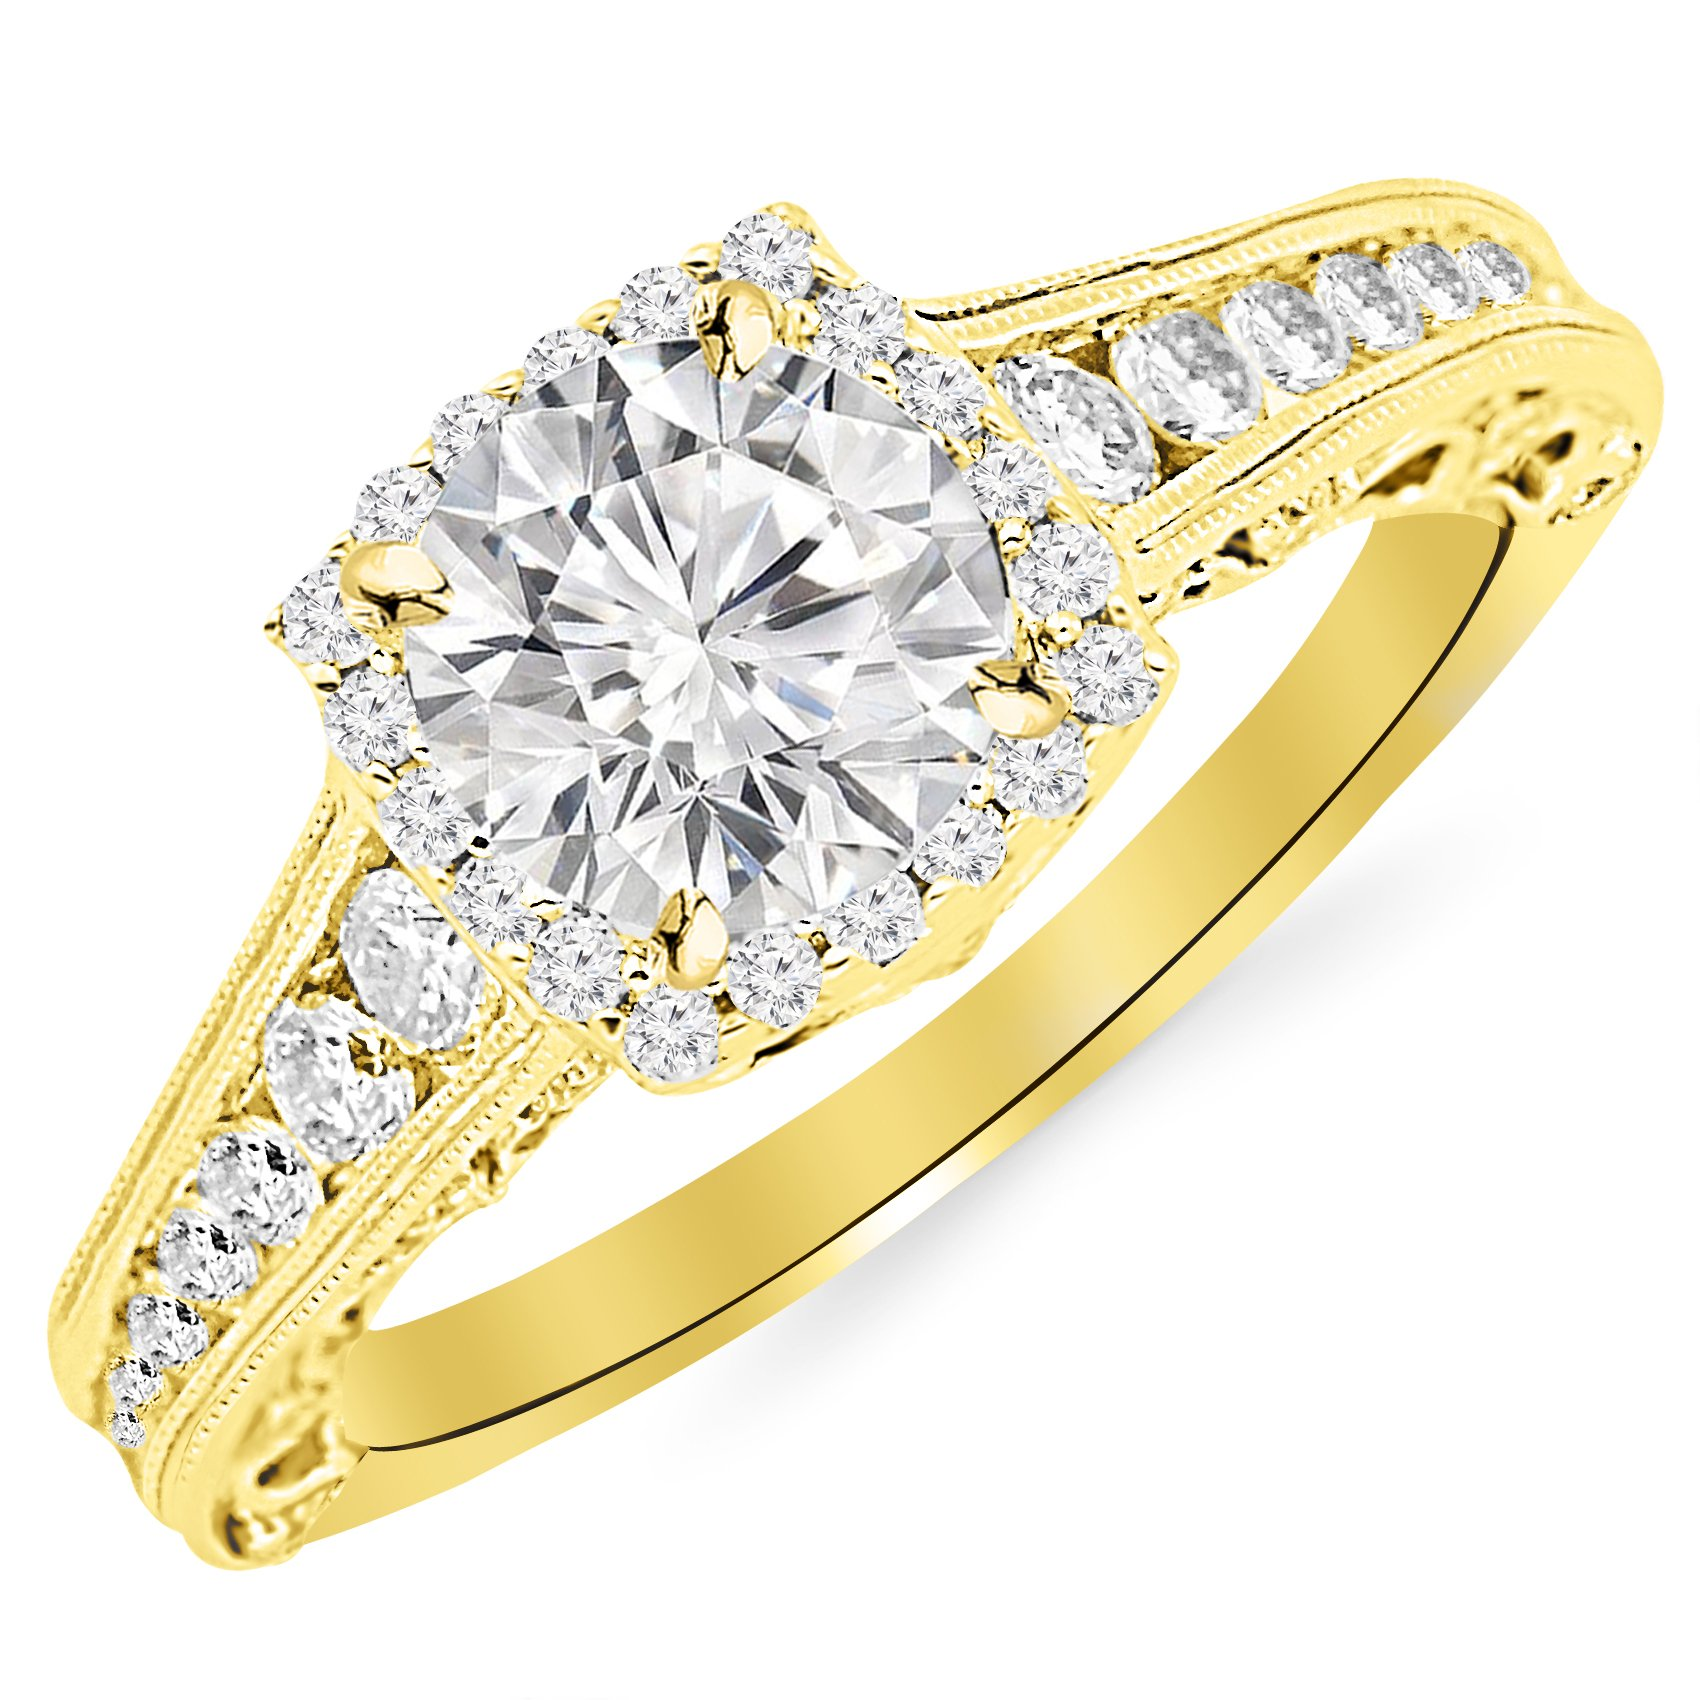 2.25 Carat 14K Yellow Gold Vintage Halo Style Channel Set Round Brilliant Diamond Engagement Ring Milgrain with a 1.5 Carat Moissanite Center